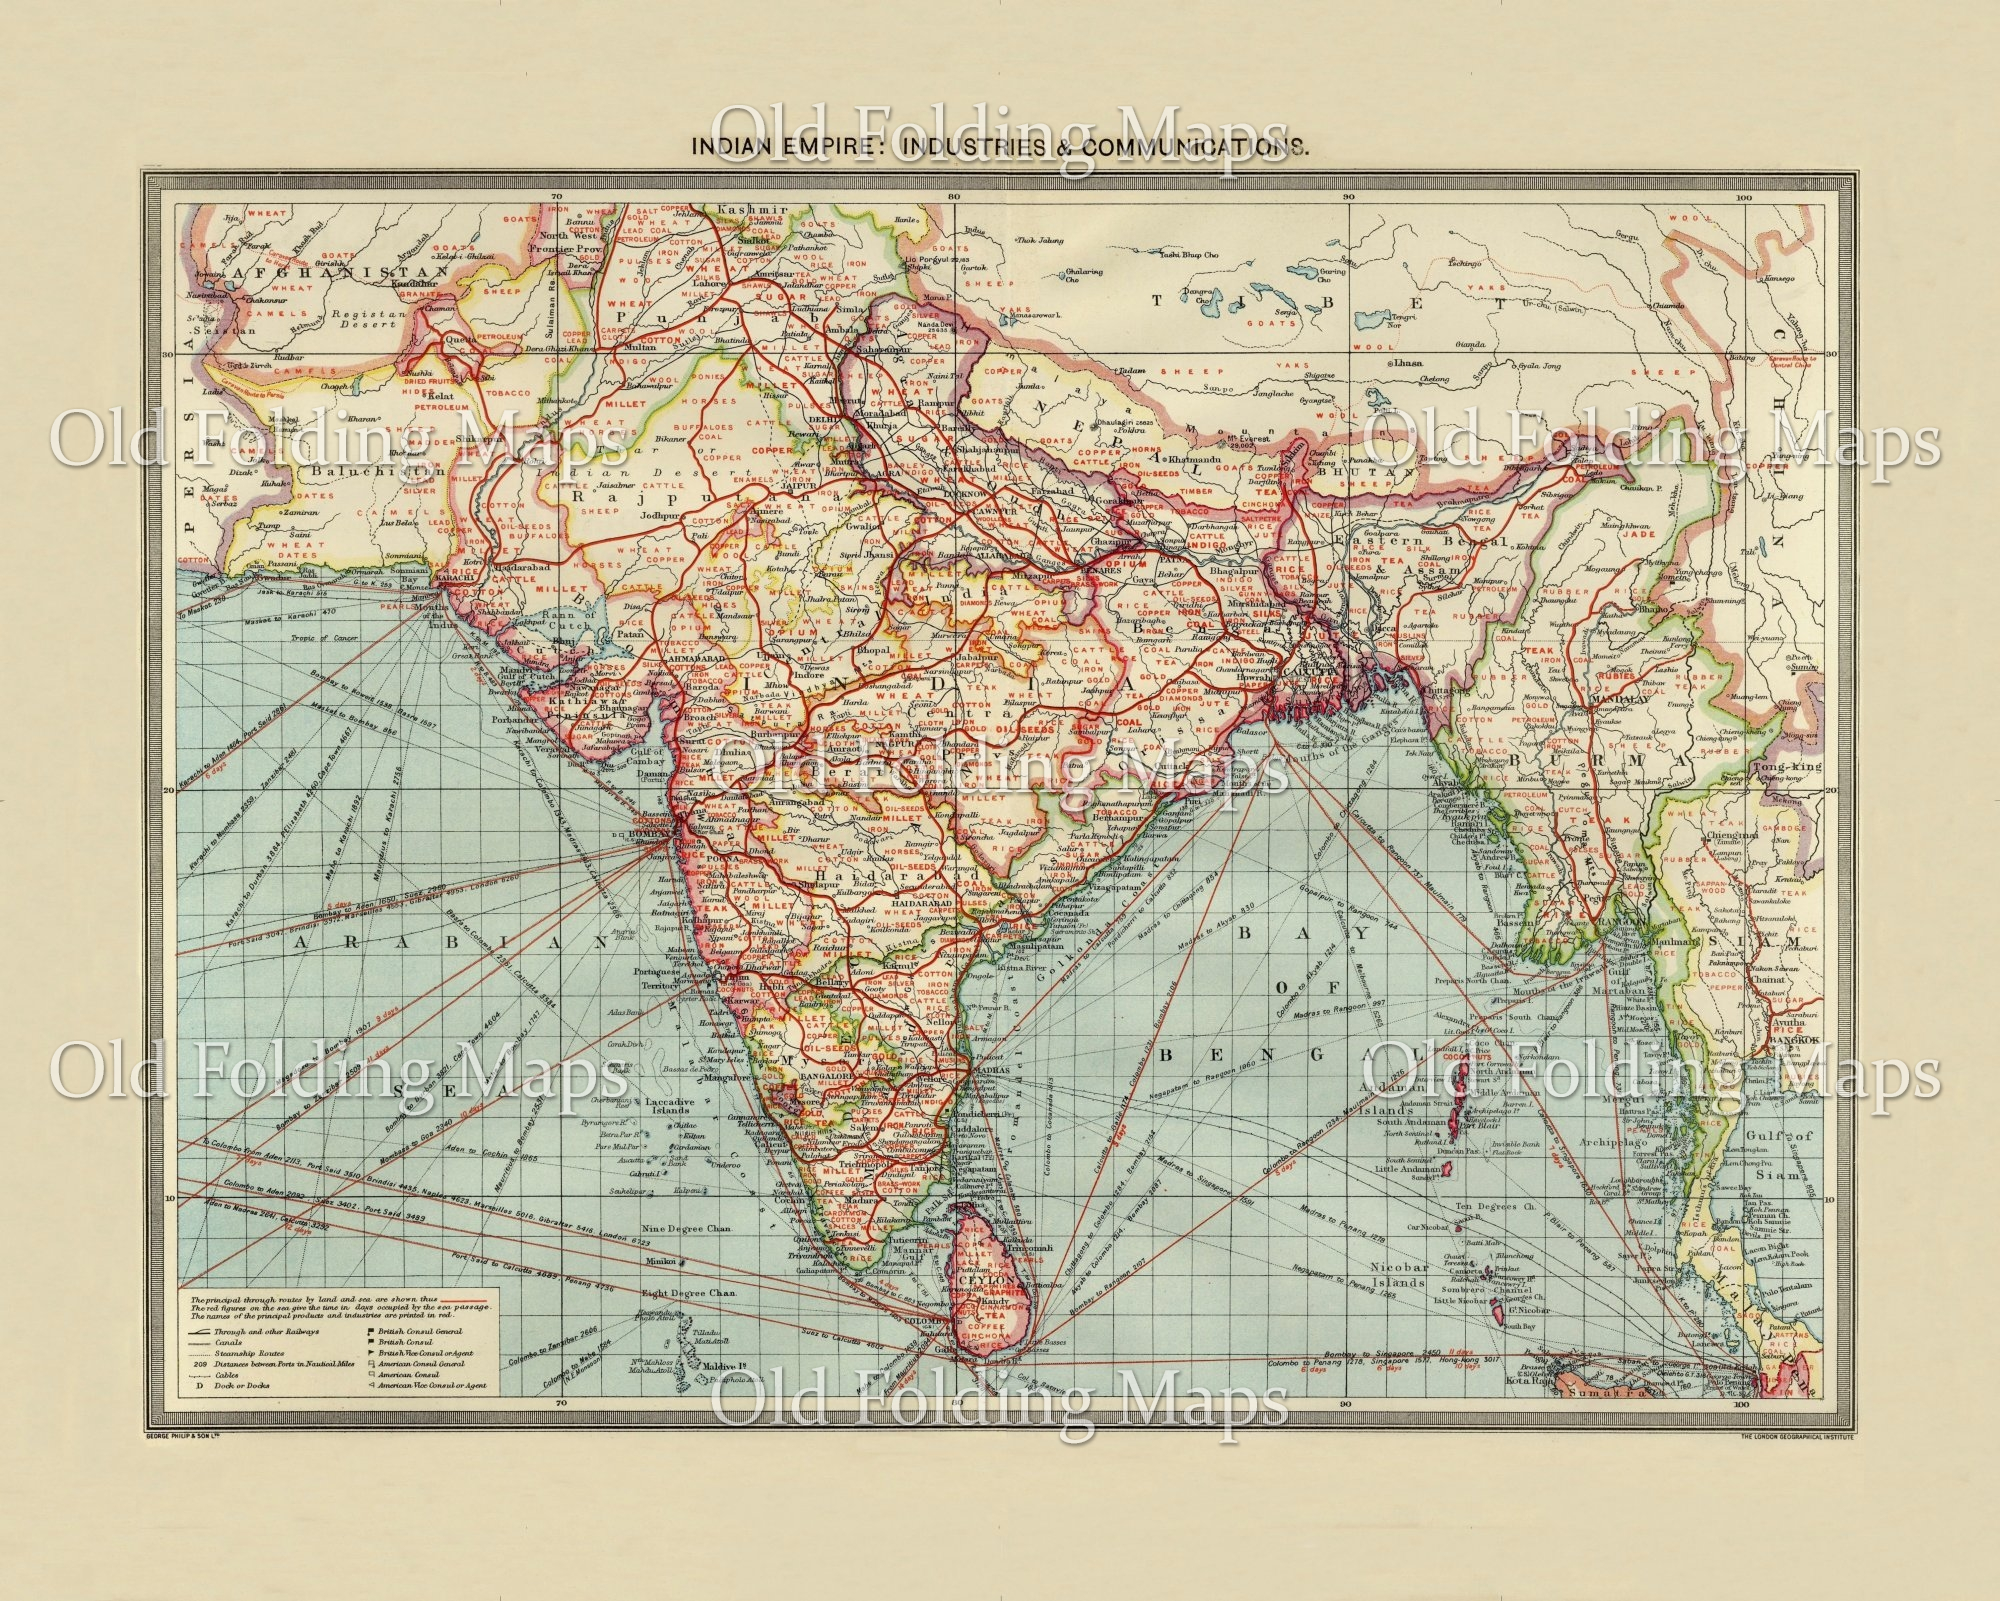 Old Map of India Industry & Communications circa 1900